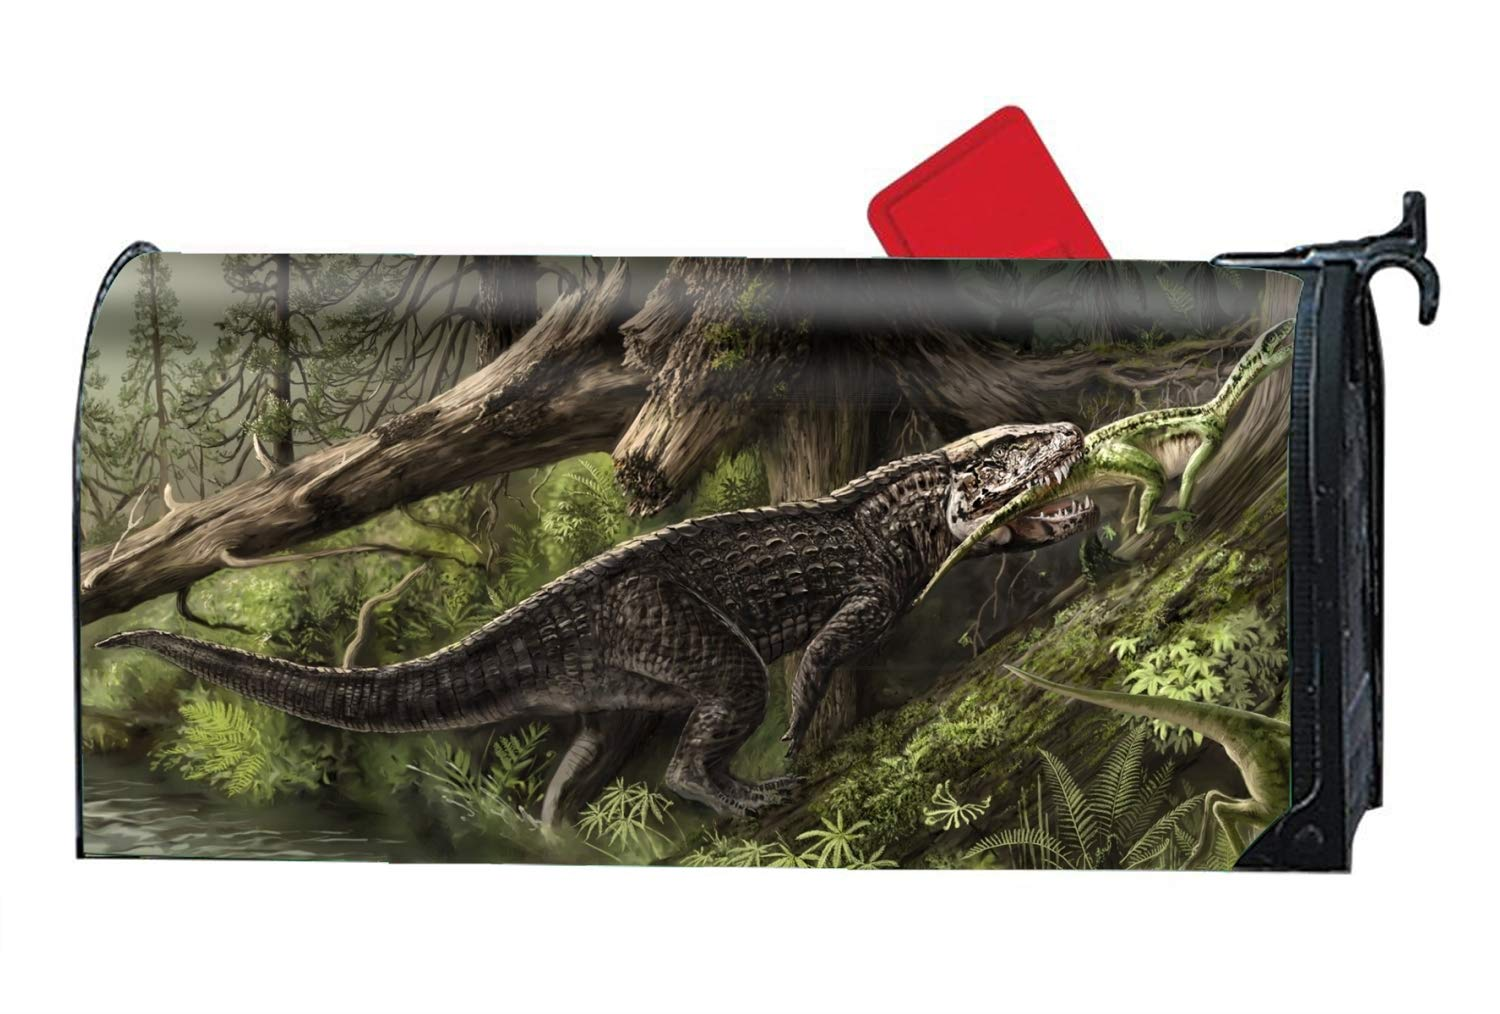 MAILL Animal Dinosaur Mailbox Cover by MAILL